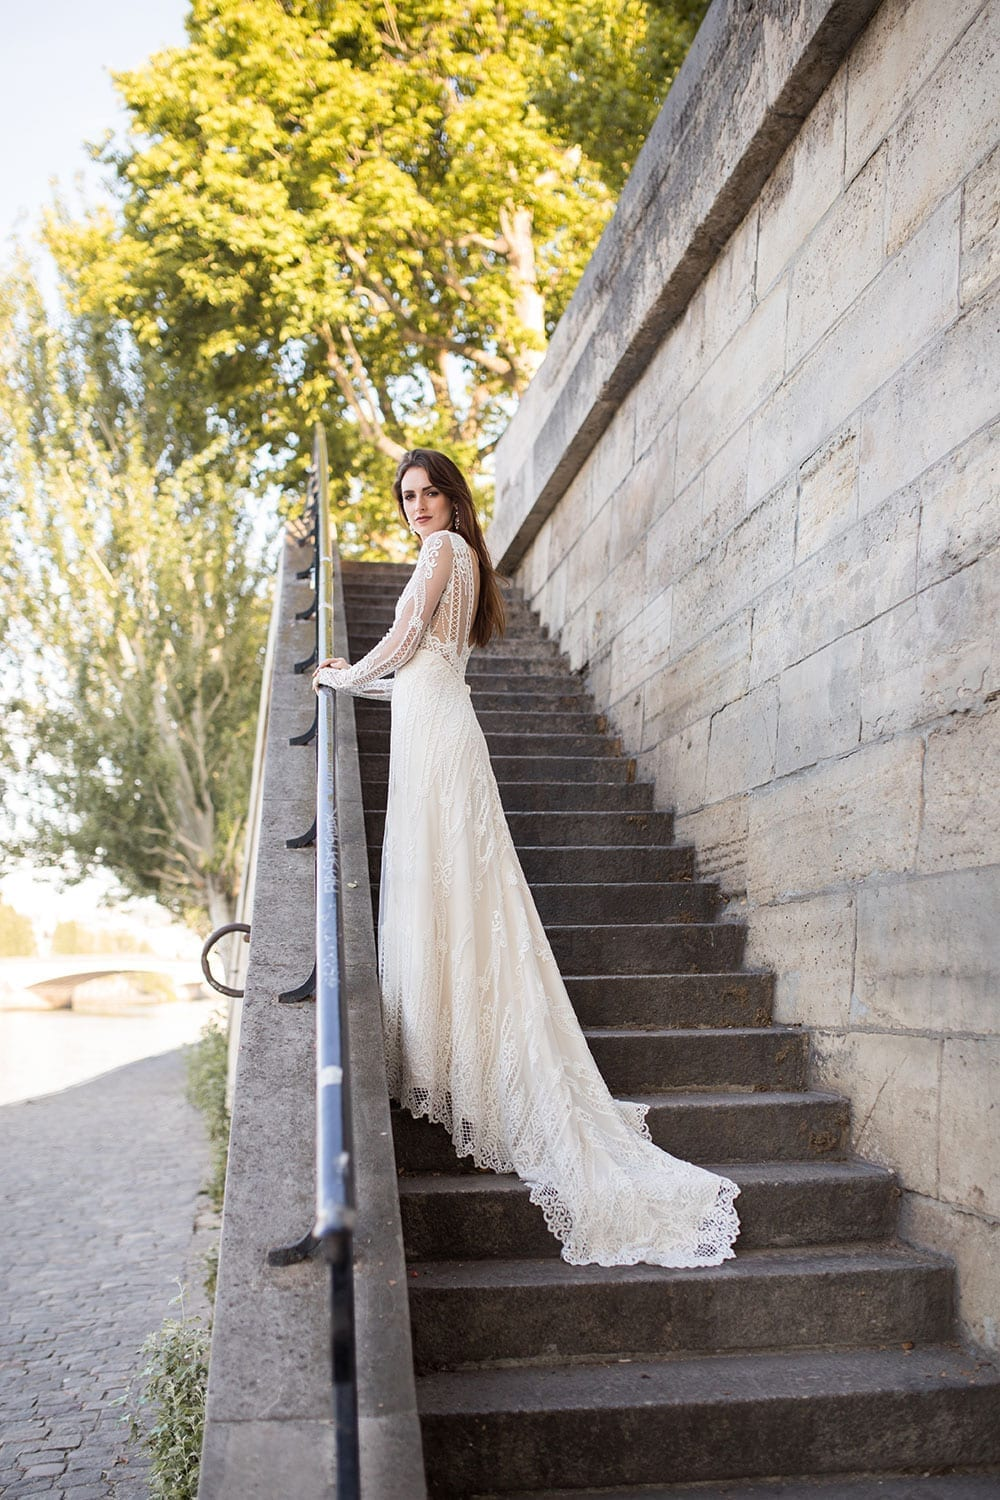 Model wearing Vinka Design Briar Wedding Dress, with gorgeous corded embroidered lace features, a sheer ivory base and long fitted sleeves with a gentle bell shape wrist. On steps in Paris